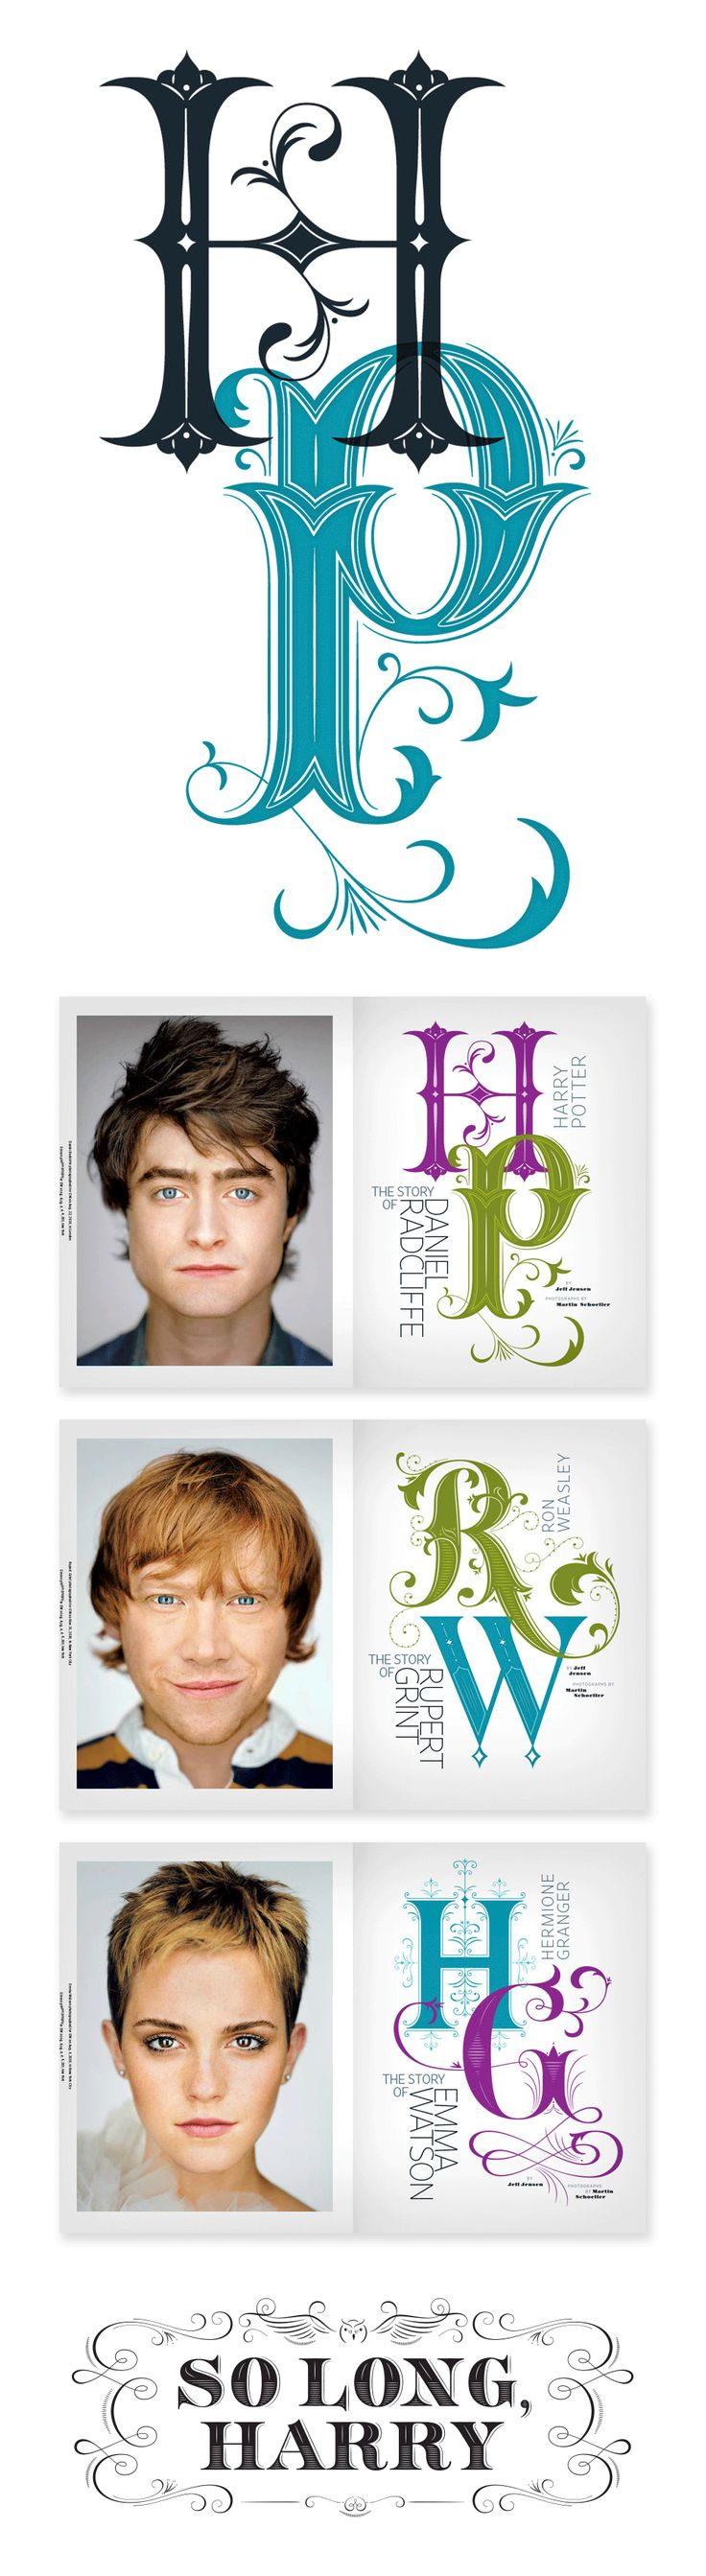 "Harry Potter work by Jessica Hische for ""Entertainment Weekly"" - #typography #design #layout"